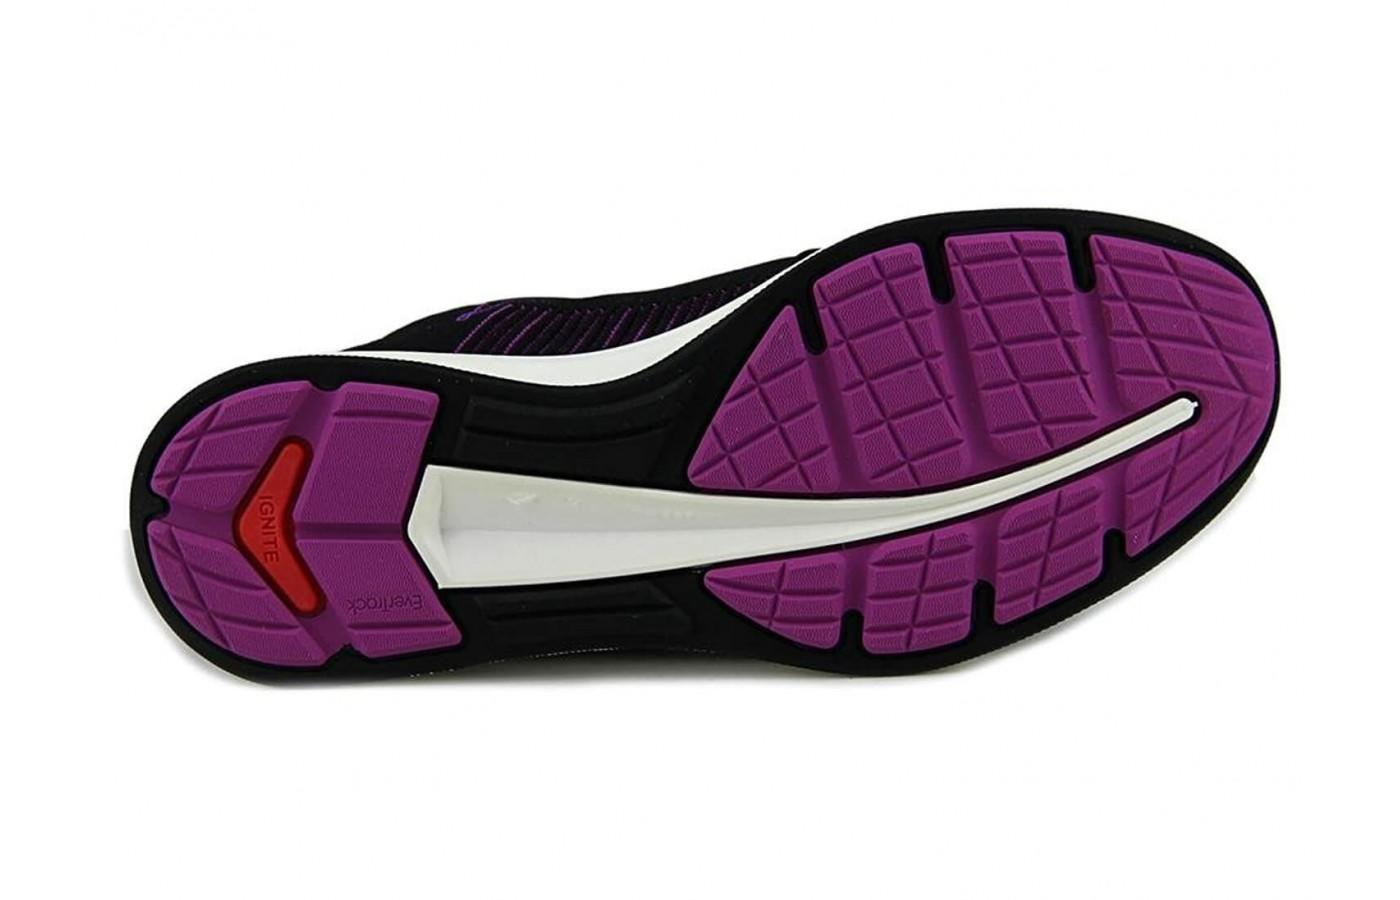 The outsole featured flex grooves that improve the flexibility of the shoe